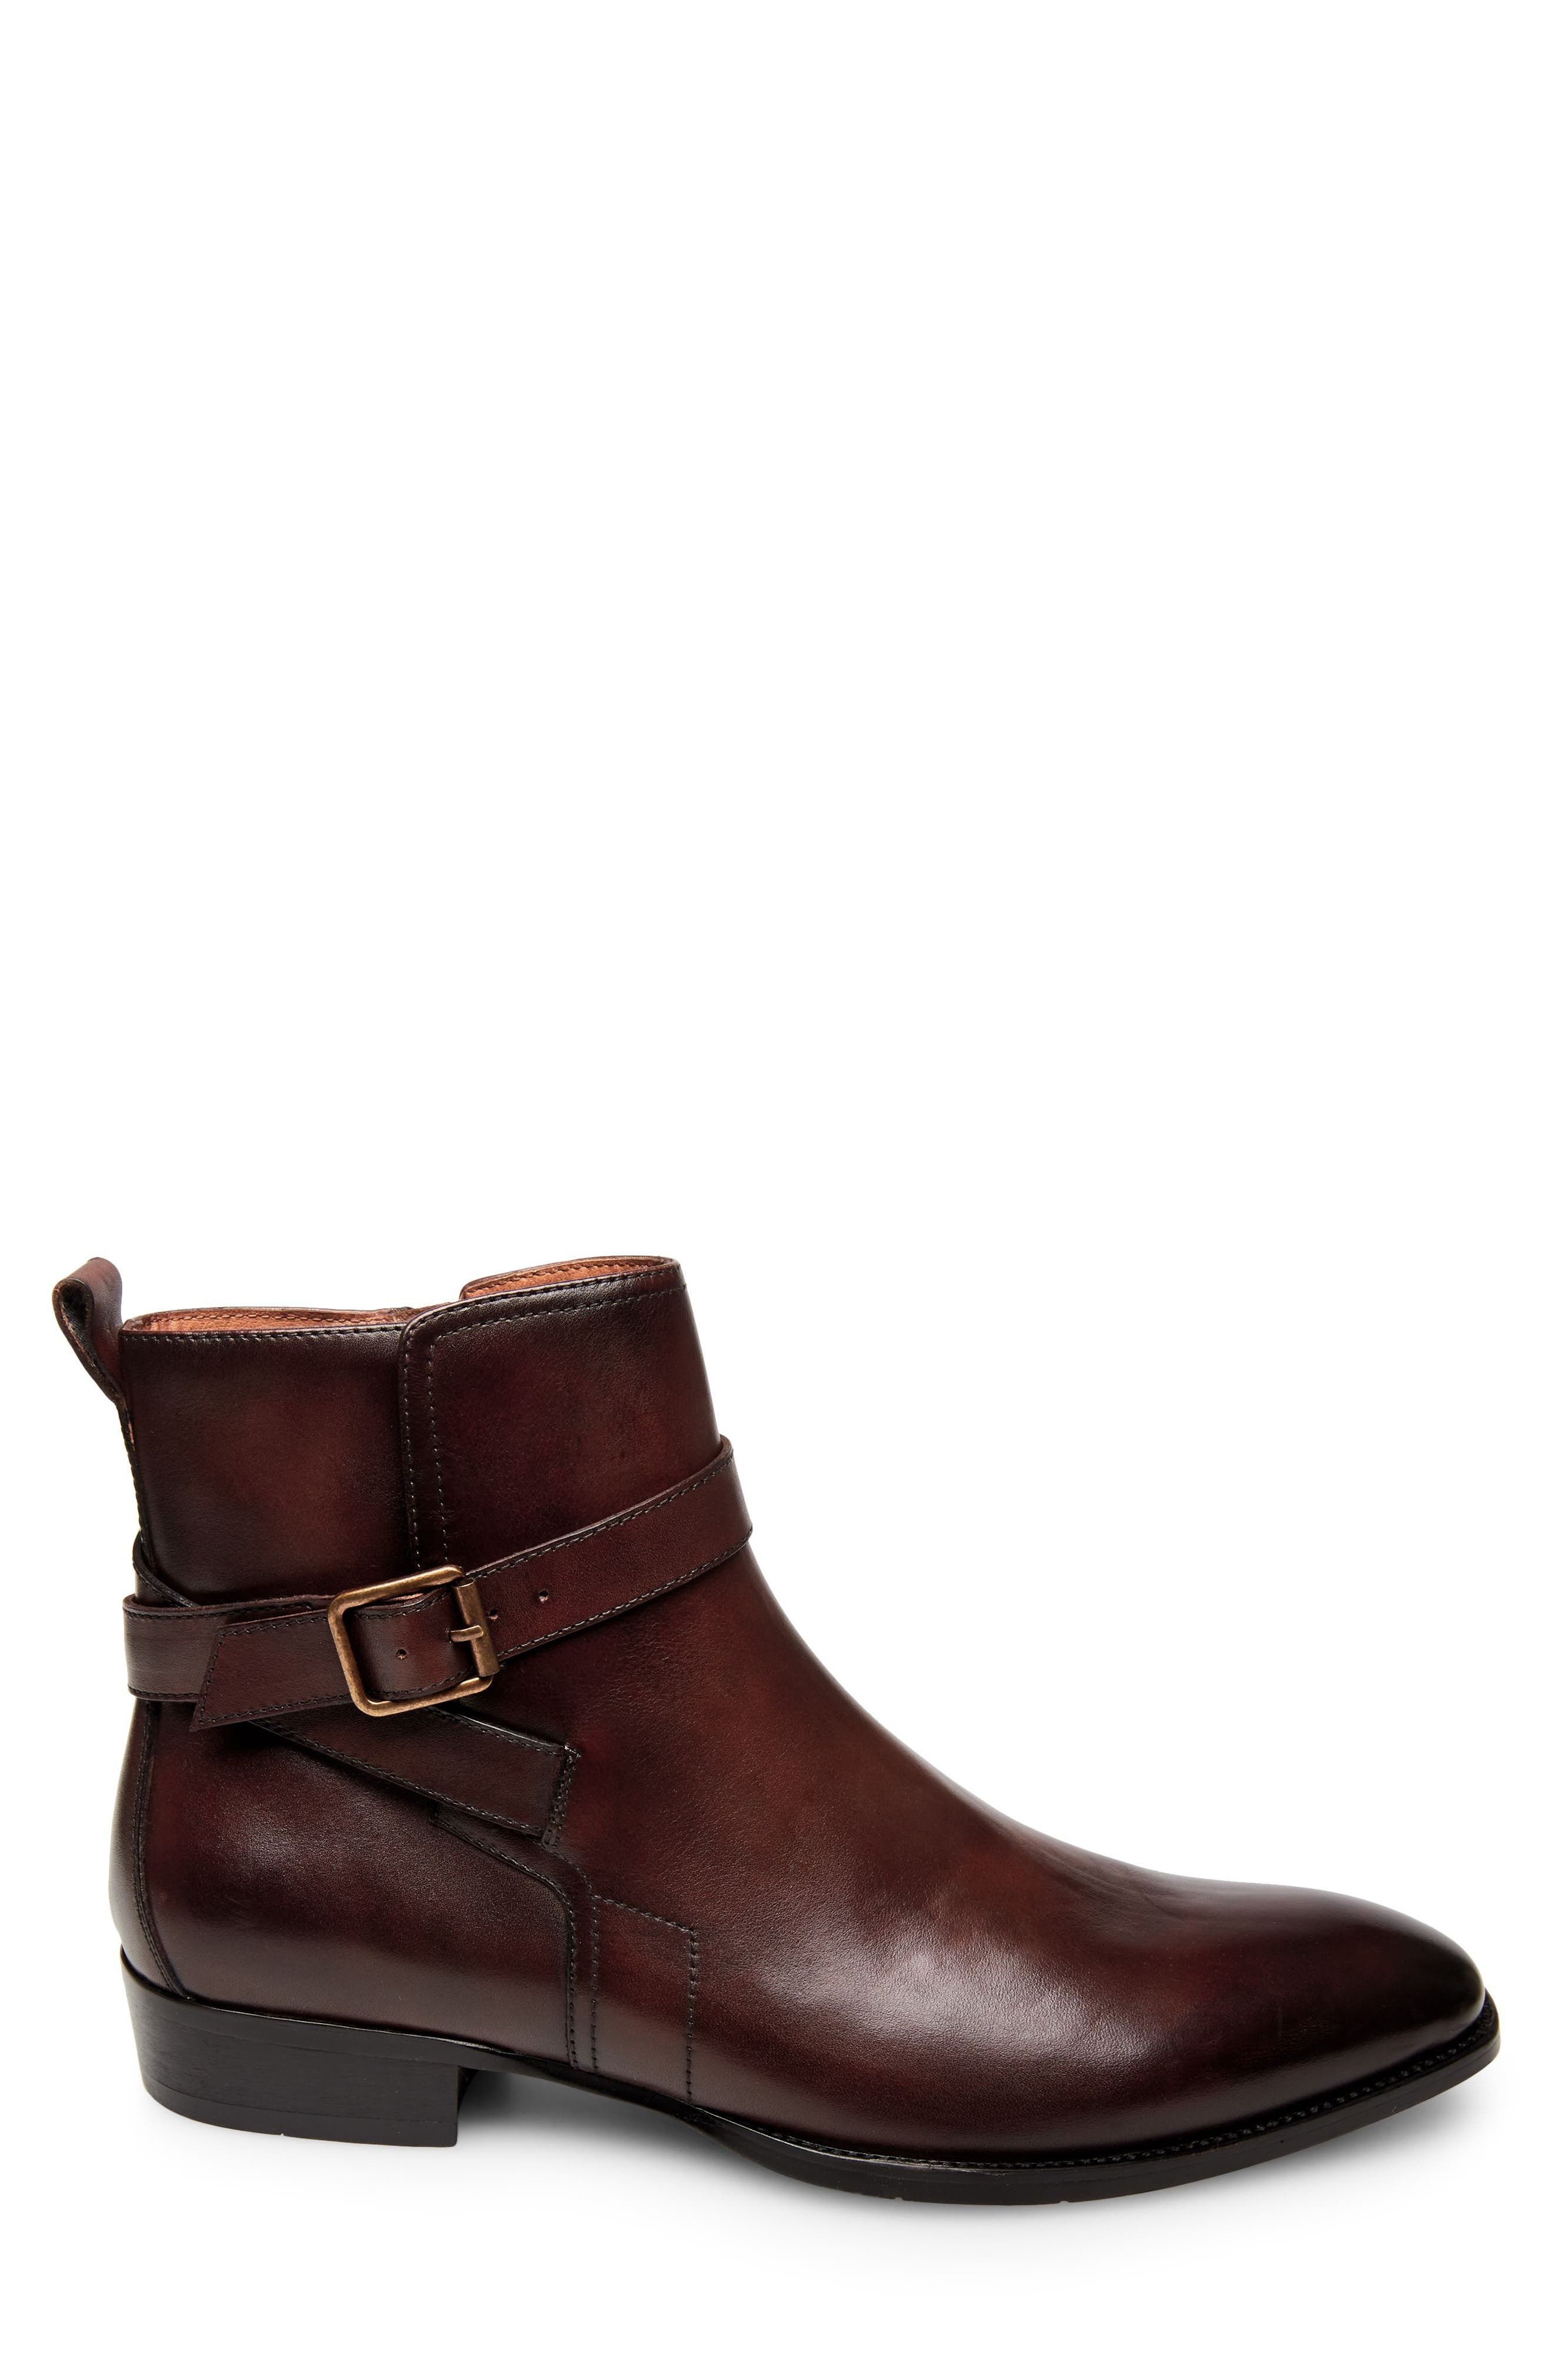 Sacha Buckle Strap Boot,                             Alternate thumbnail 3, color,                             Brown Leather